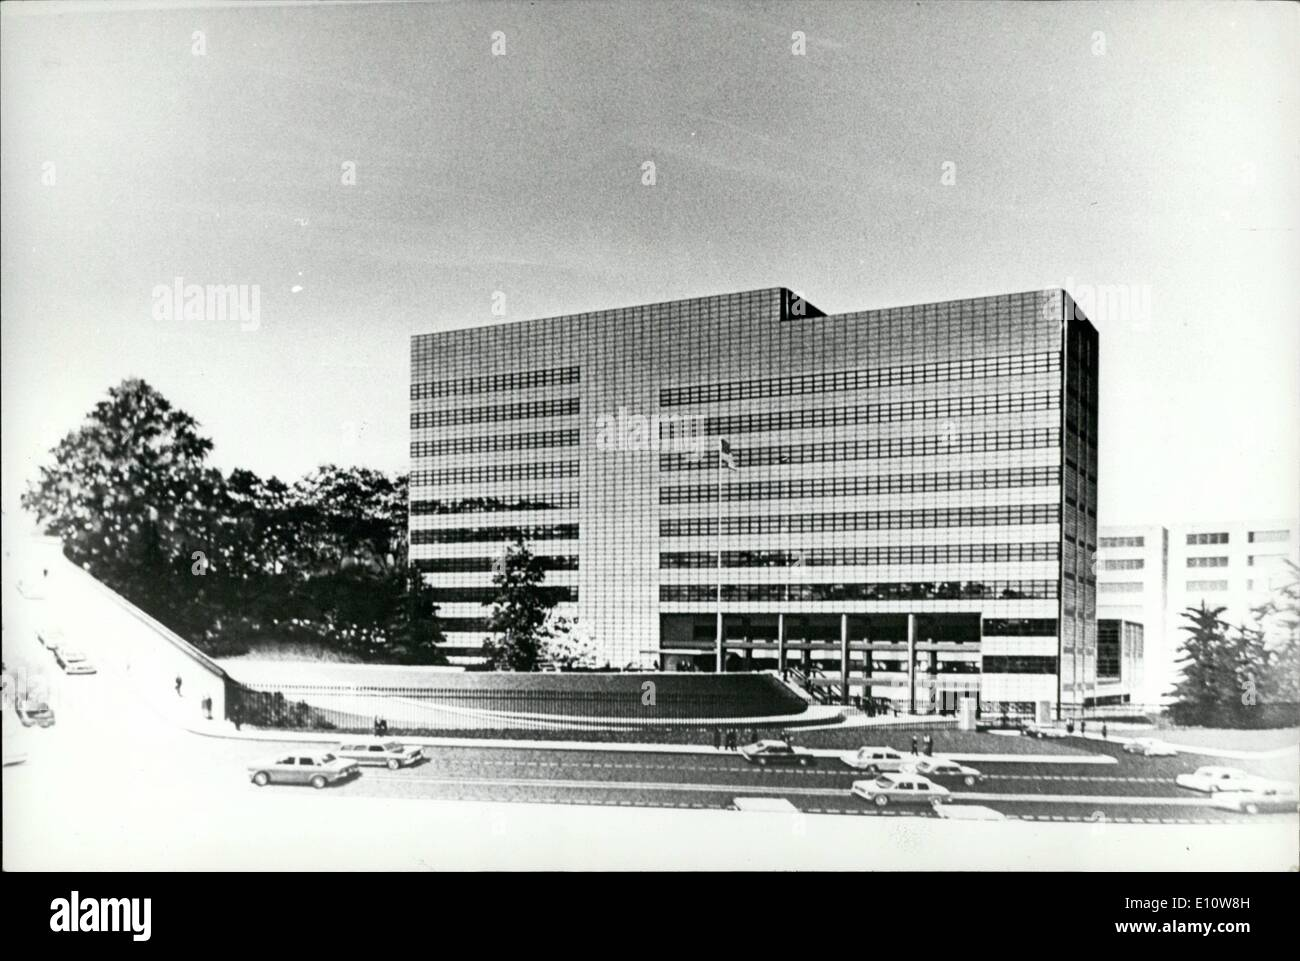 Jun. 06, 1974 - ''Hoover's Folly'' in Tokyo demolished. The U.S. Embassy in Tokyo, which was named ''Hoover's folly'' when critics charged that the exorbitant sum of -million was squanderd on it by the late president Herbert hoover during the ''Great Depression'' in 1931, is being demolished to make way for a glass paneled new American embassy. The old embassy was designed by Antonin Raymond. a disciple of Frank Lloyd Wright, and was referred to as an edifice of mixed architectural blood. The new embassy has been designed by Cesar Pelli of Gruen Associates in Los Angeles. U.S.A - Stock Image